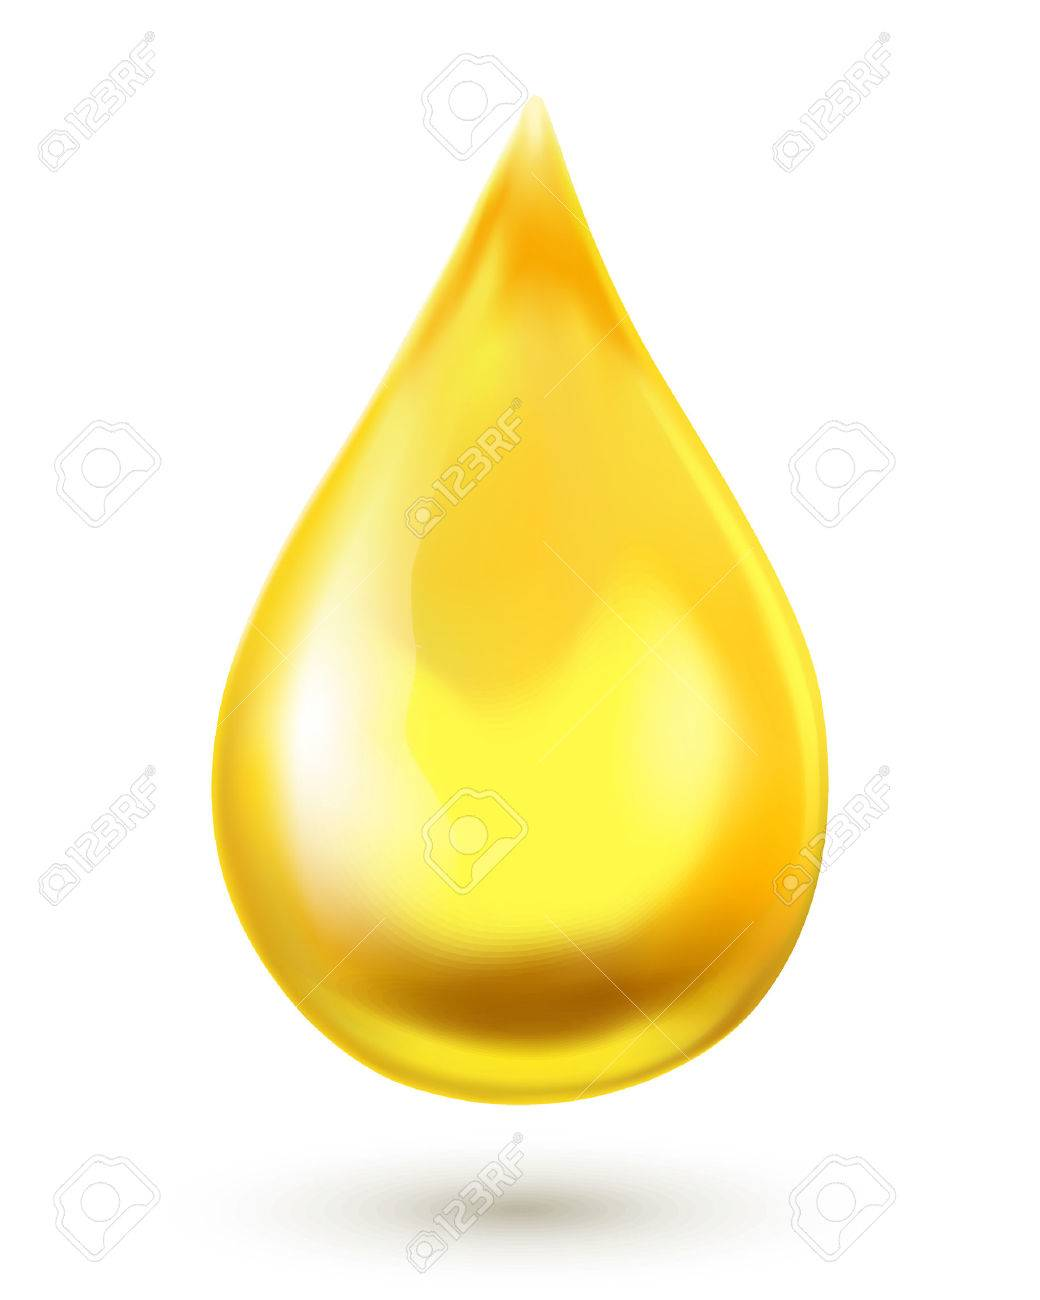 Oil drop isolated on white background - 41773212